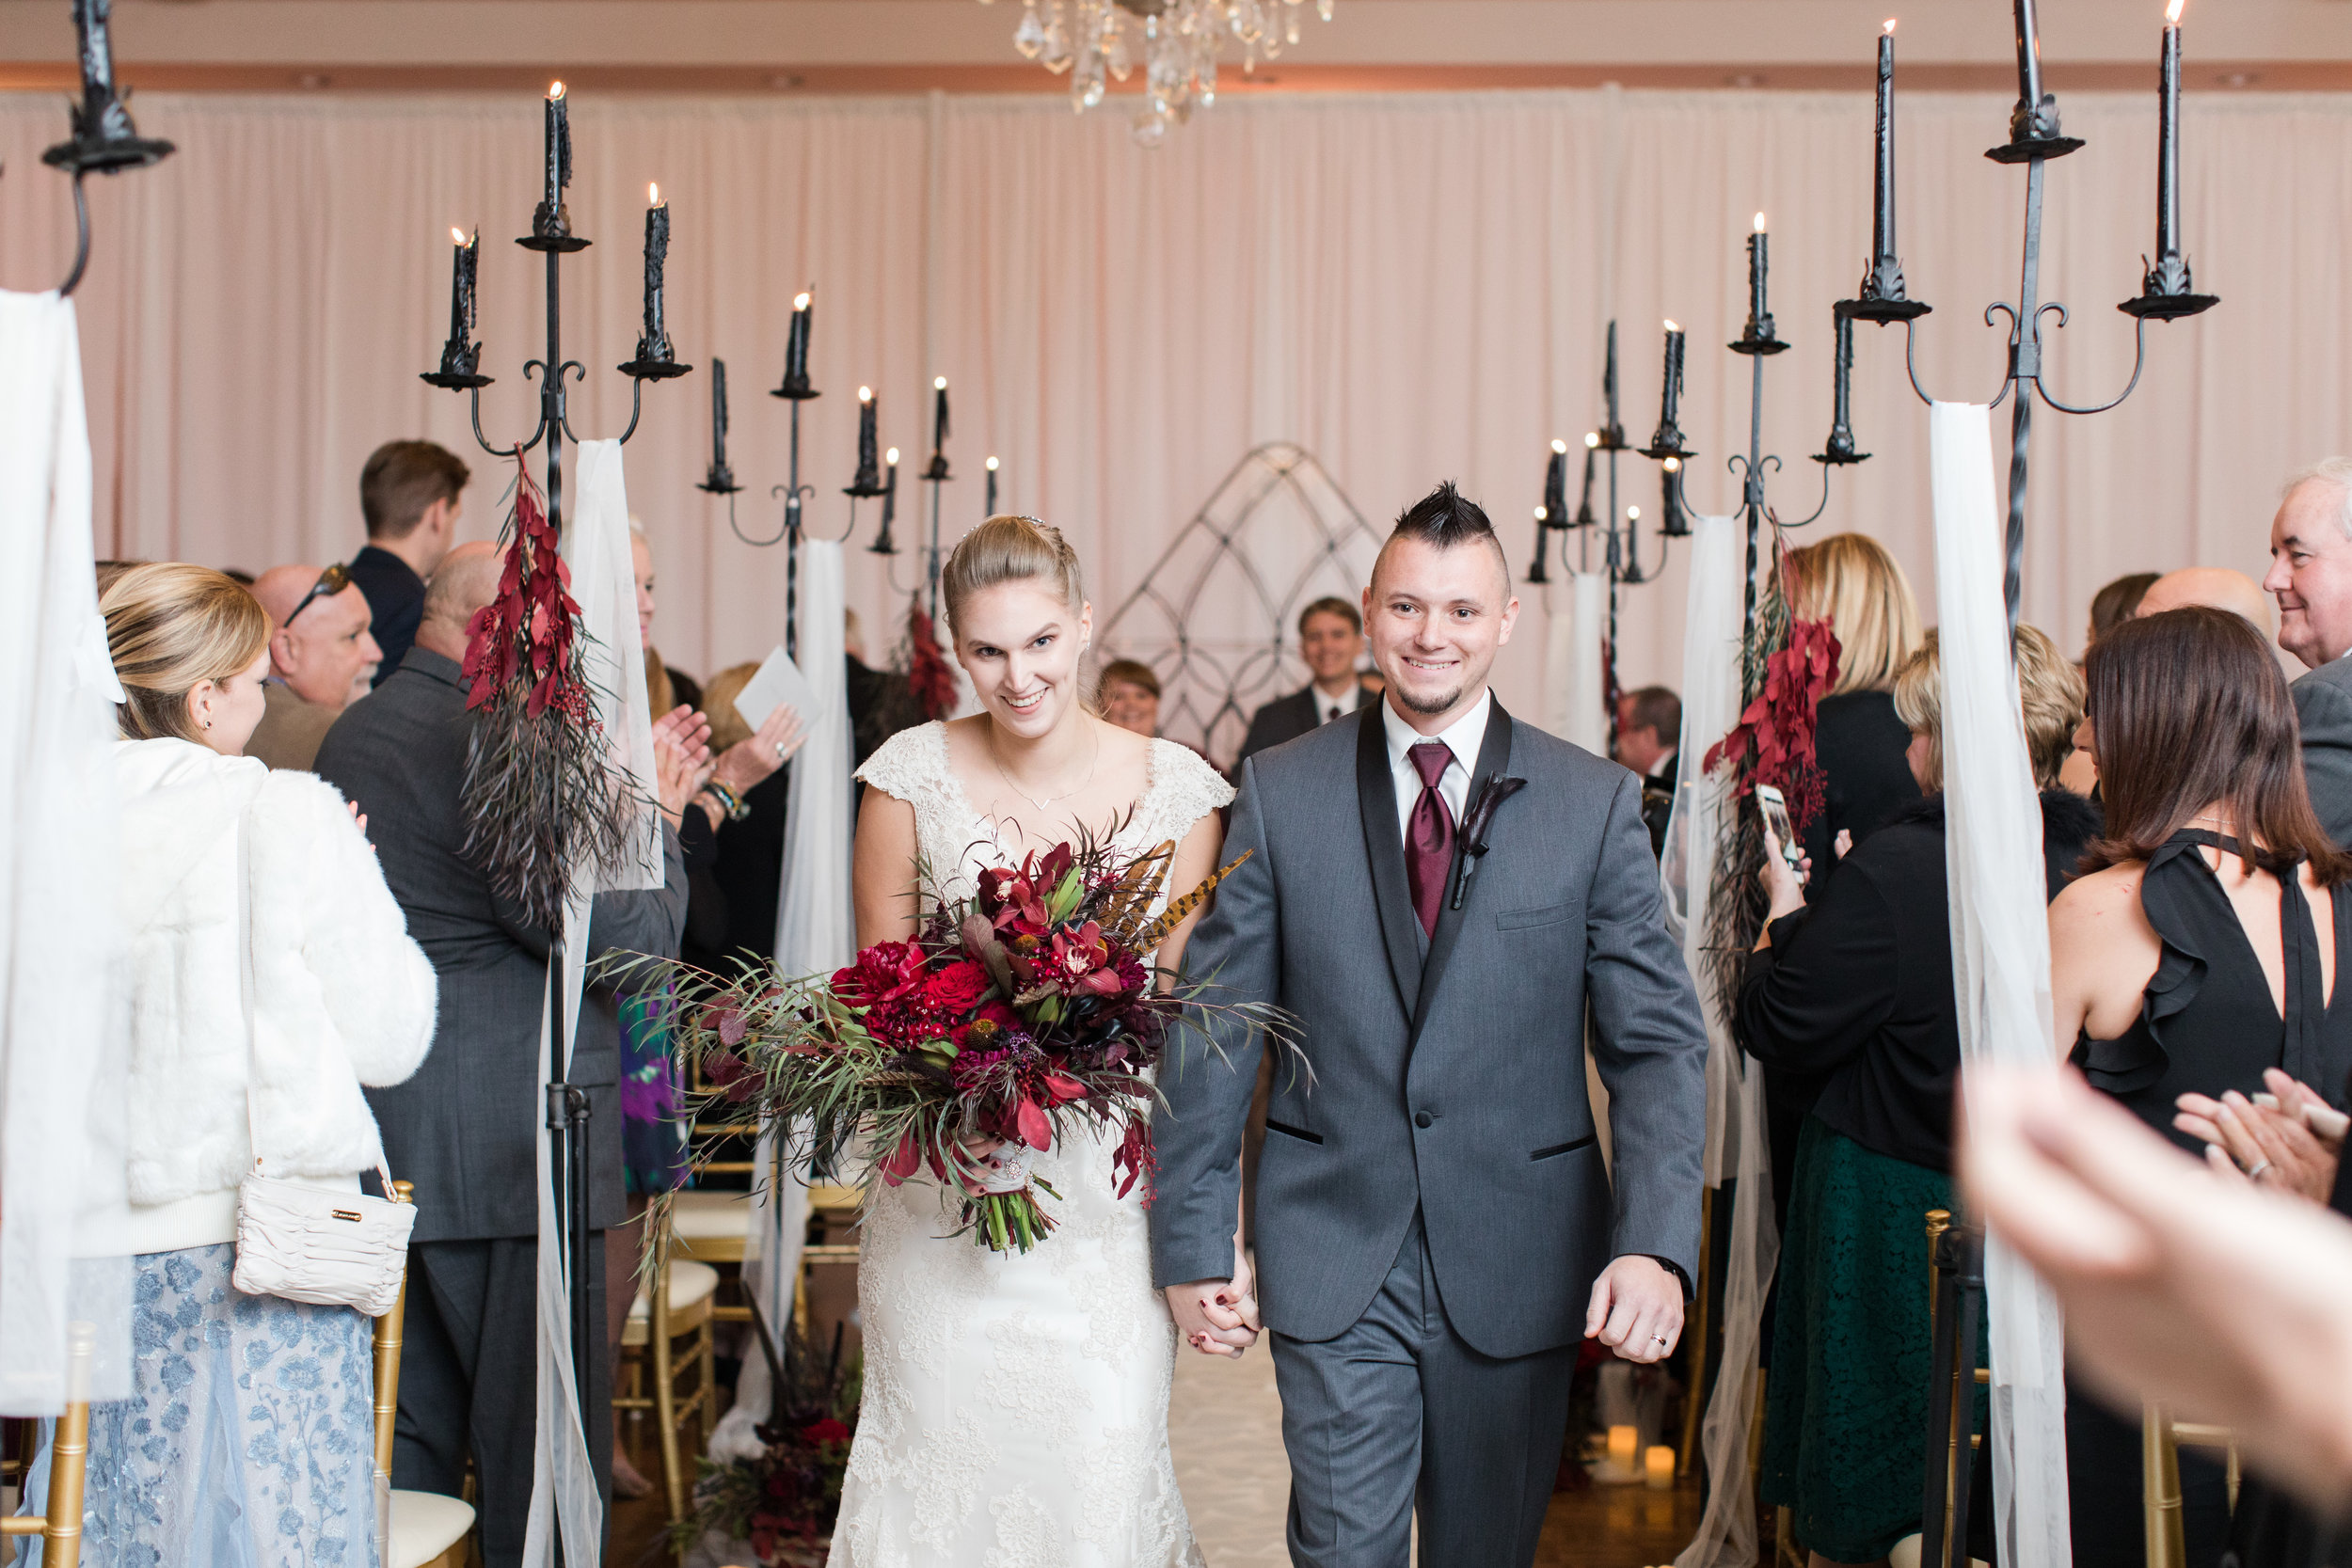 Bride and groom exit the beauty and the beast inspired ceremony at a fall library inspired wedding at Buona Sera Palazzo dark red and black fall bridal bouquet